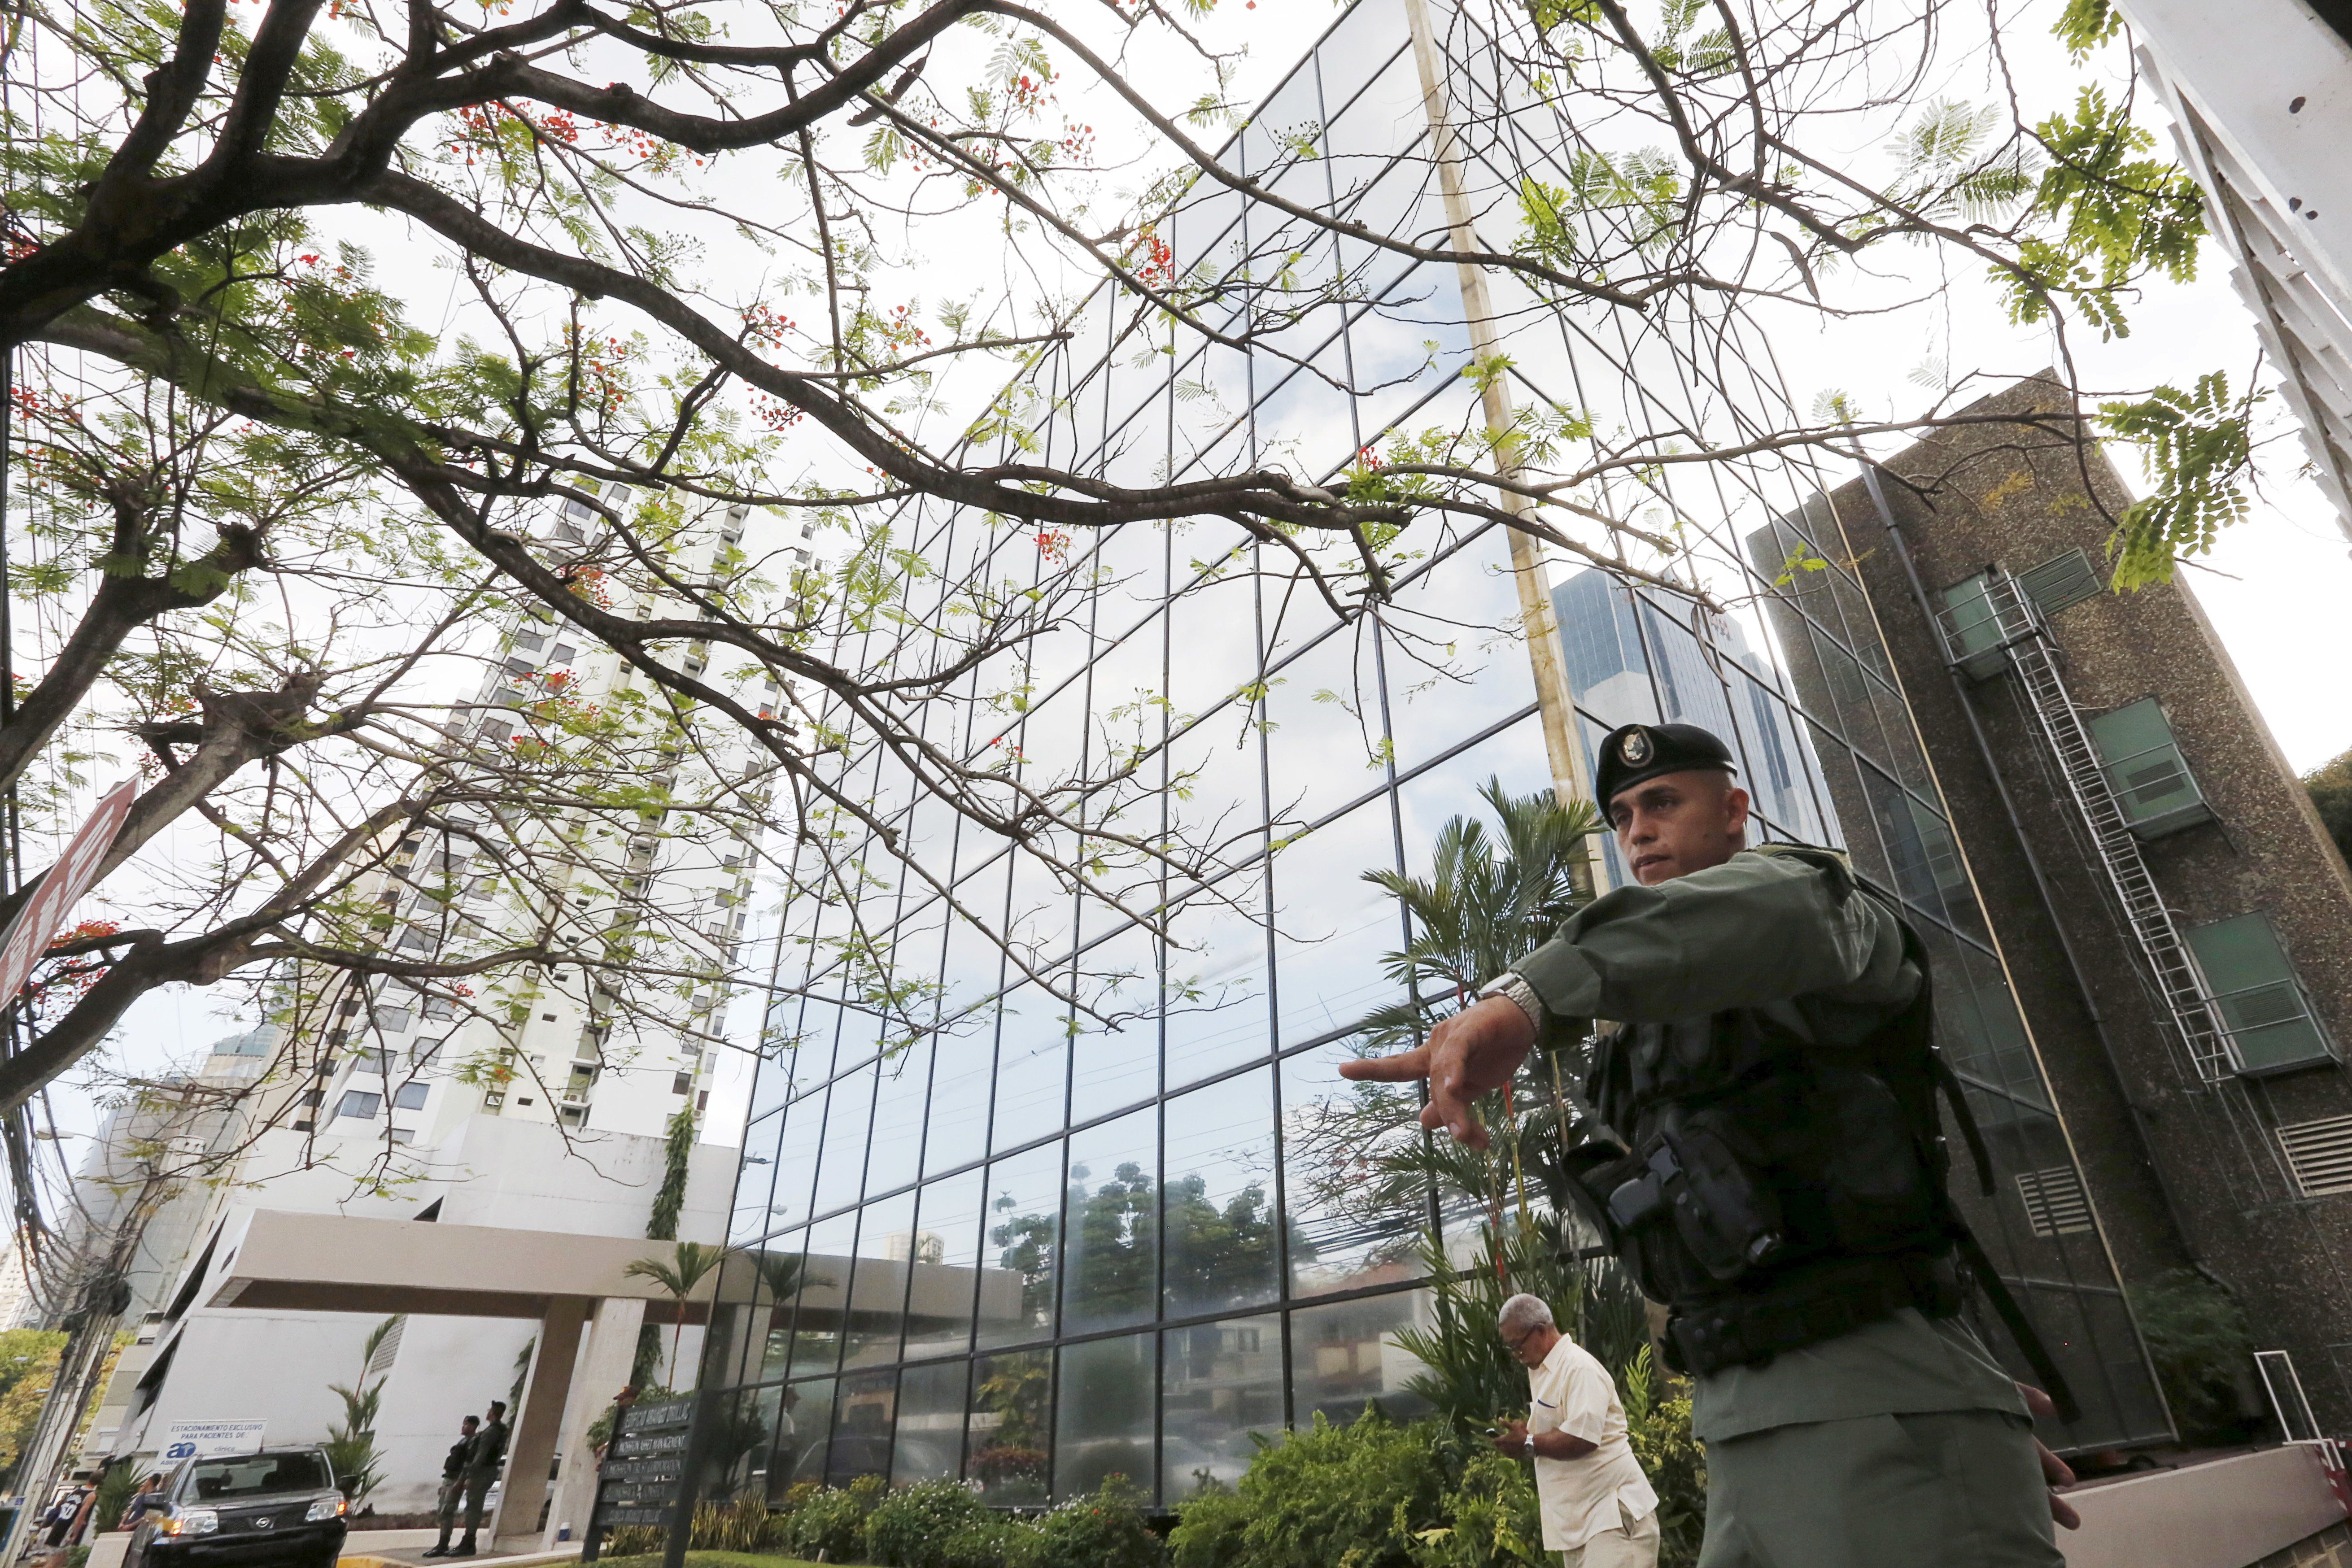 A police officer gestures as he stands guard outside the Mossack Fonseca law firm office in Panama City April 12, 2016. REUTERS/Carlos Jasso